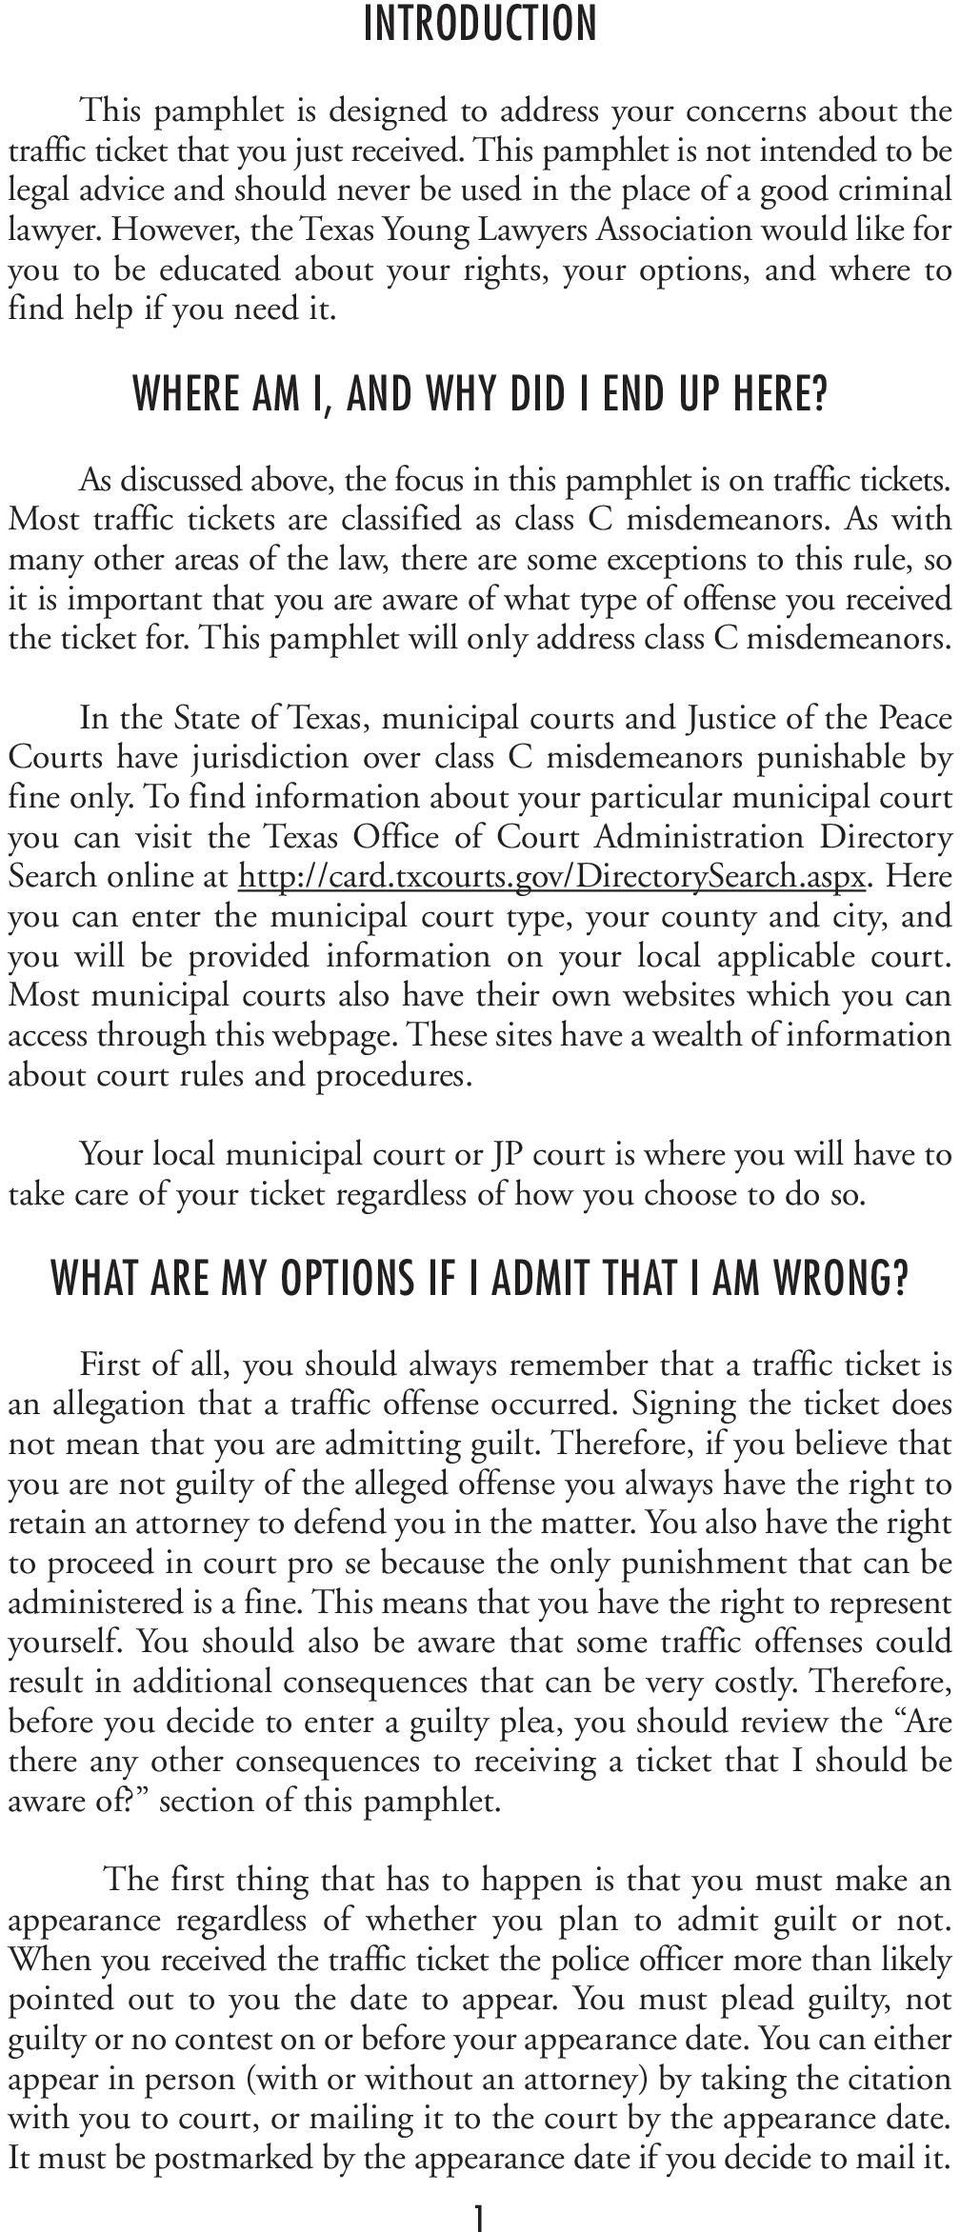 However, the Texas Young Lawyers Association would like for you to be educated about your rights, your options, and where to find help if you need it. WHERE AM I, AND WHY DID I END UP HERE?